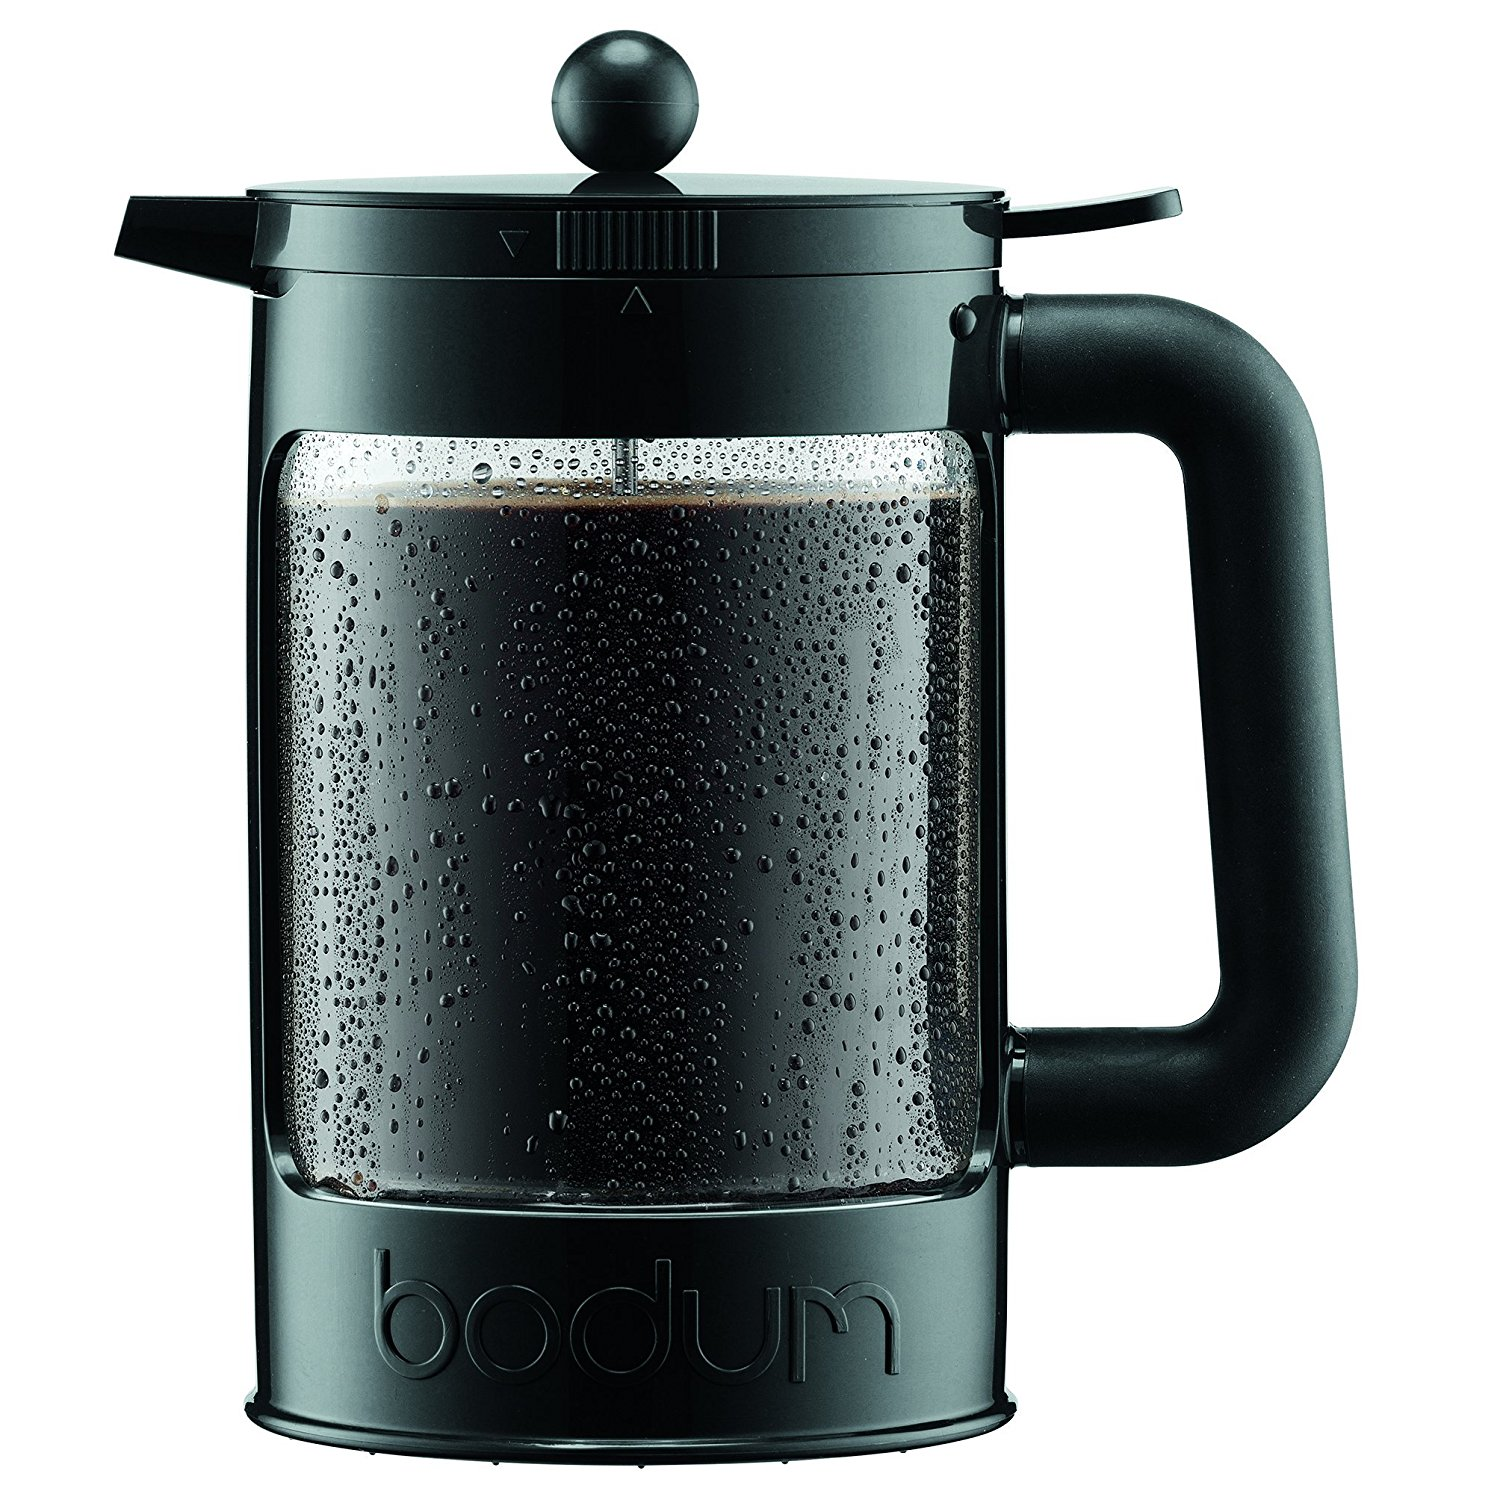 Bodum K11683-01 Bean Cold Brew Coffee Maker Set, 1.5 L/51 oz, Black